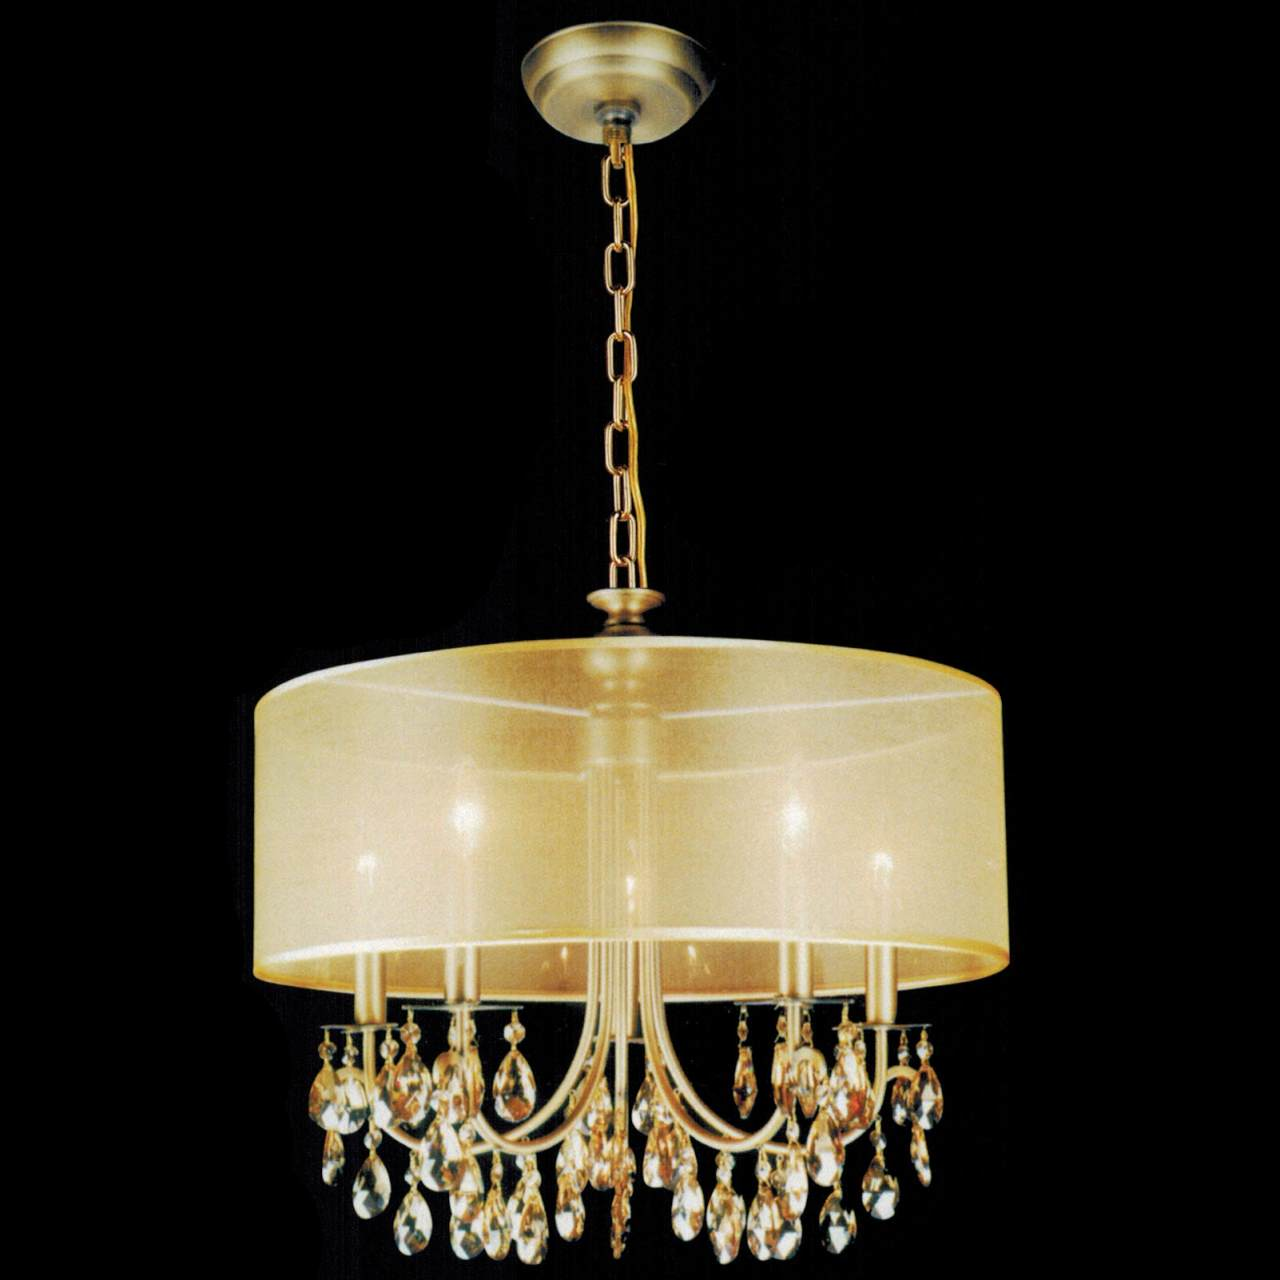 Brizzo lighting stores 22 organza contemporary round crystal picture of 22 organza contemporary round crystal pendant chandelier antique brass finish champagne shade and mozeypictures Gallery